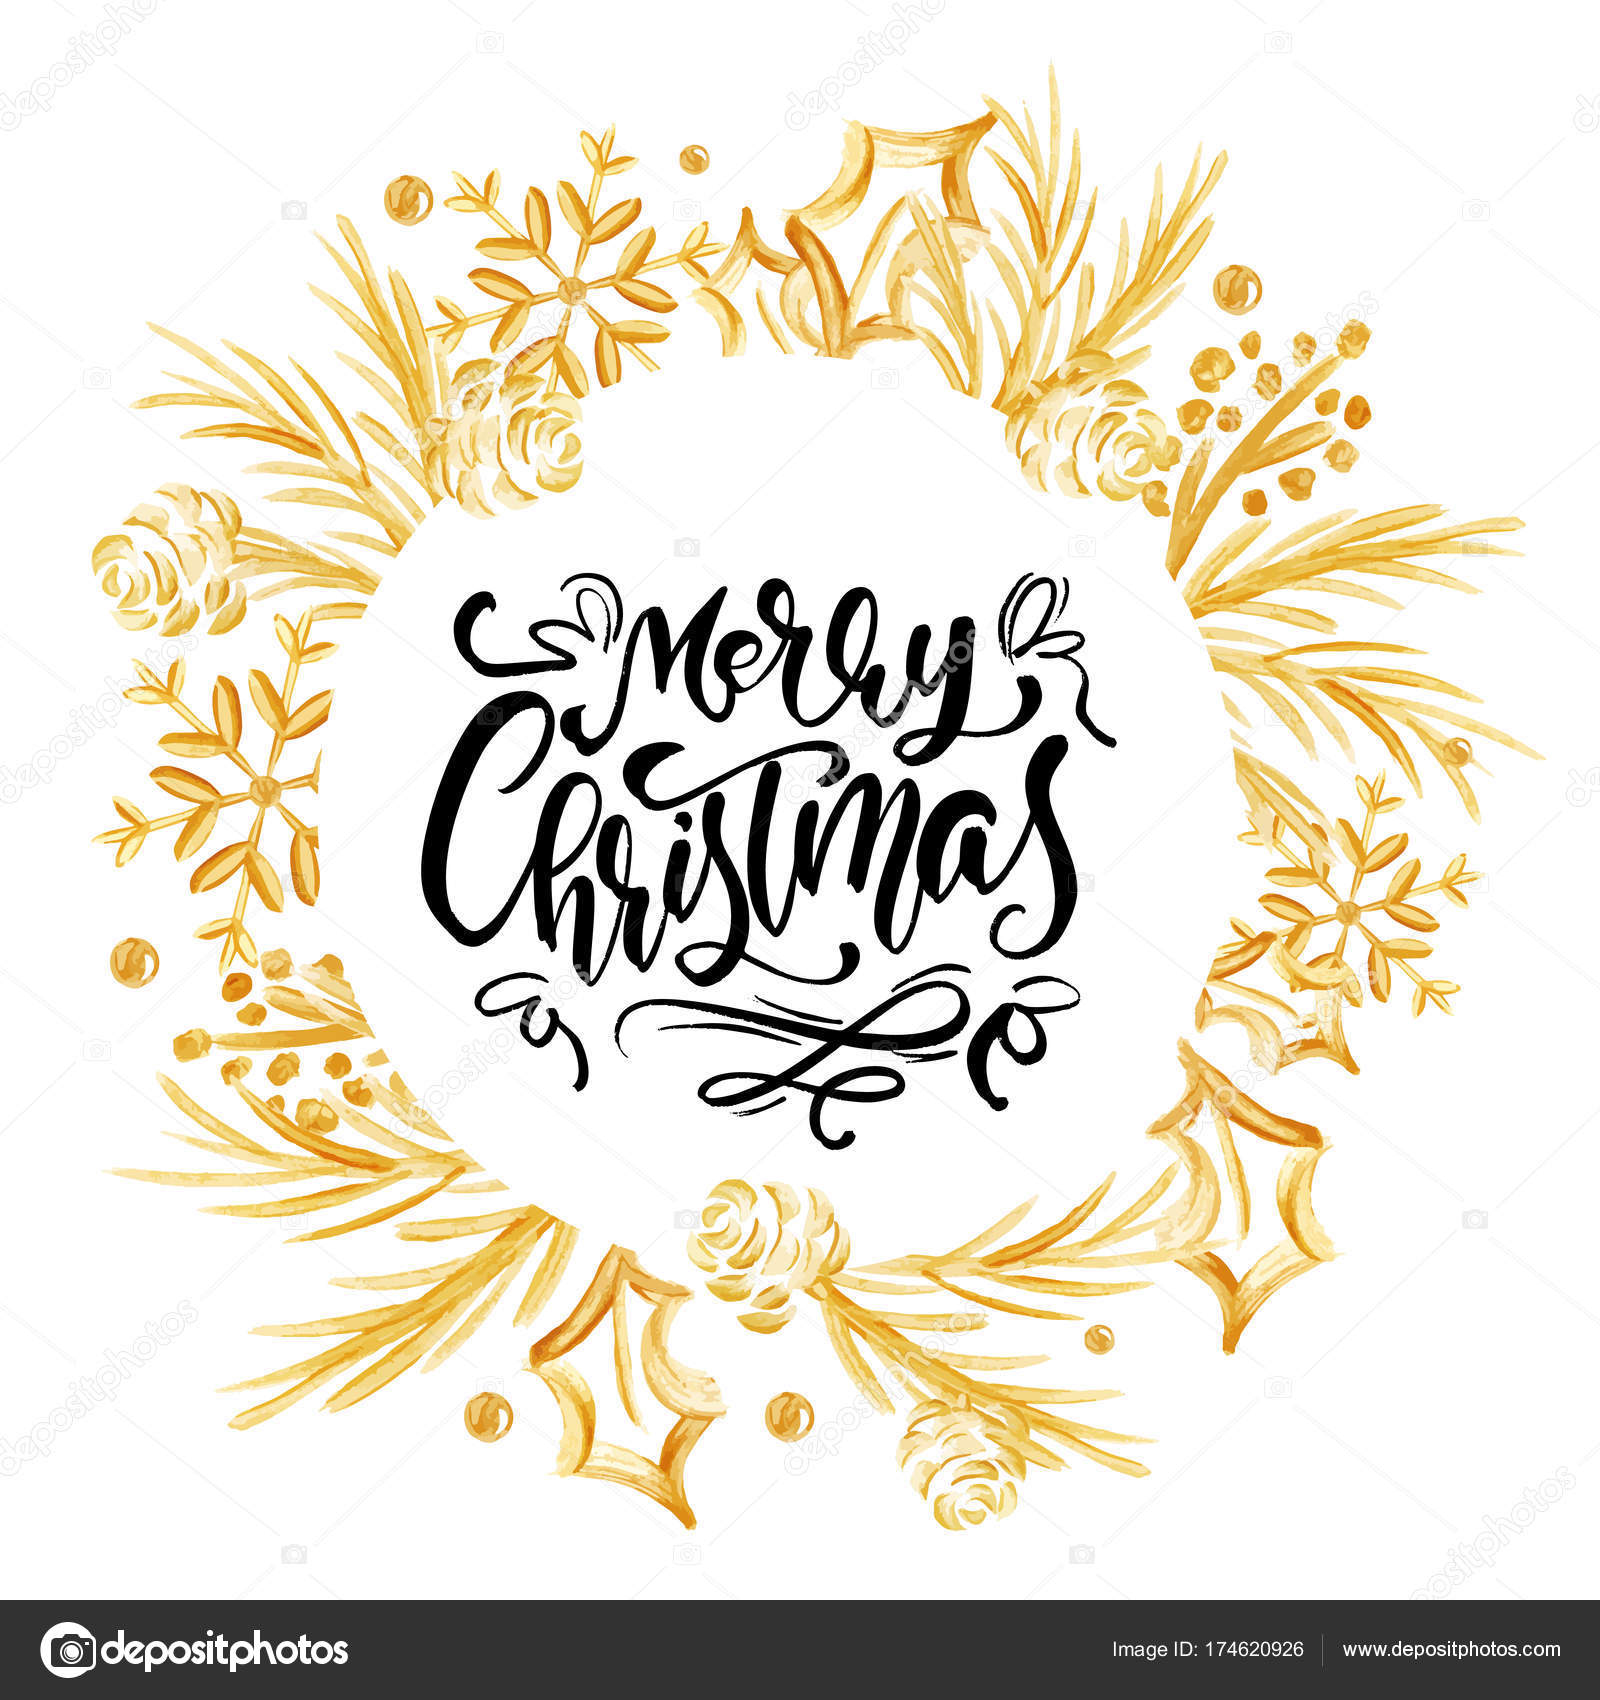 Merry Christmas Calligraphy.Merry Christmas Calligraphy Lettering Text And A Gold Wreath